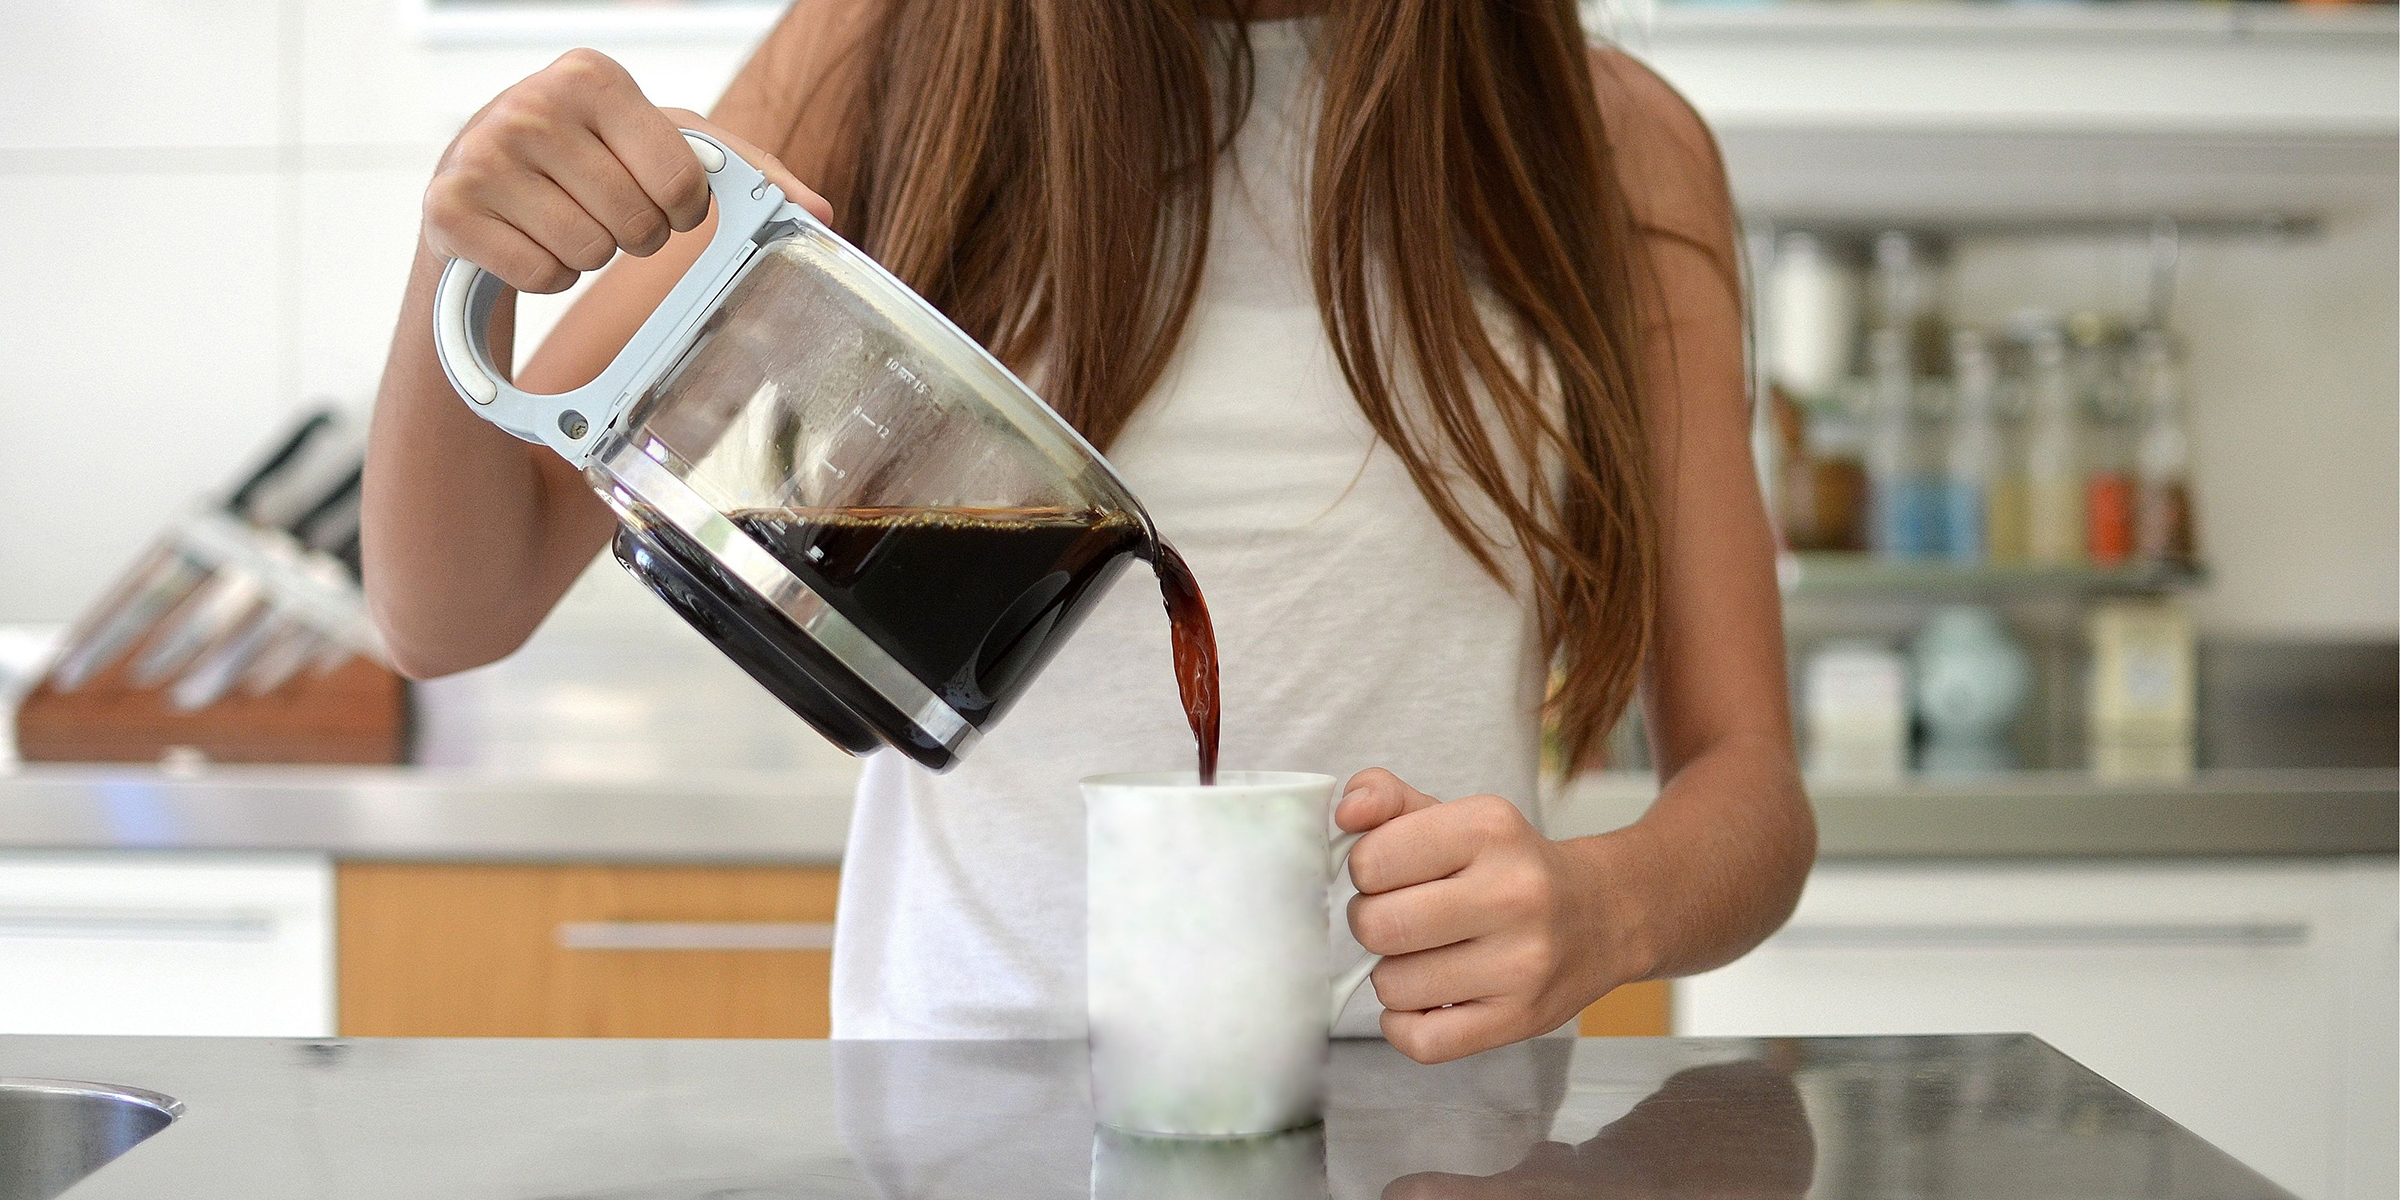 How To Make Coffee In A Drip Coffee Maker